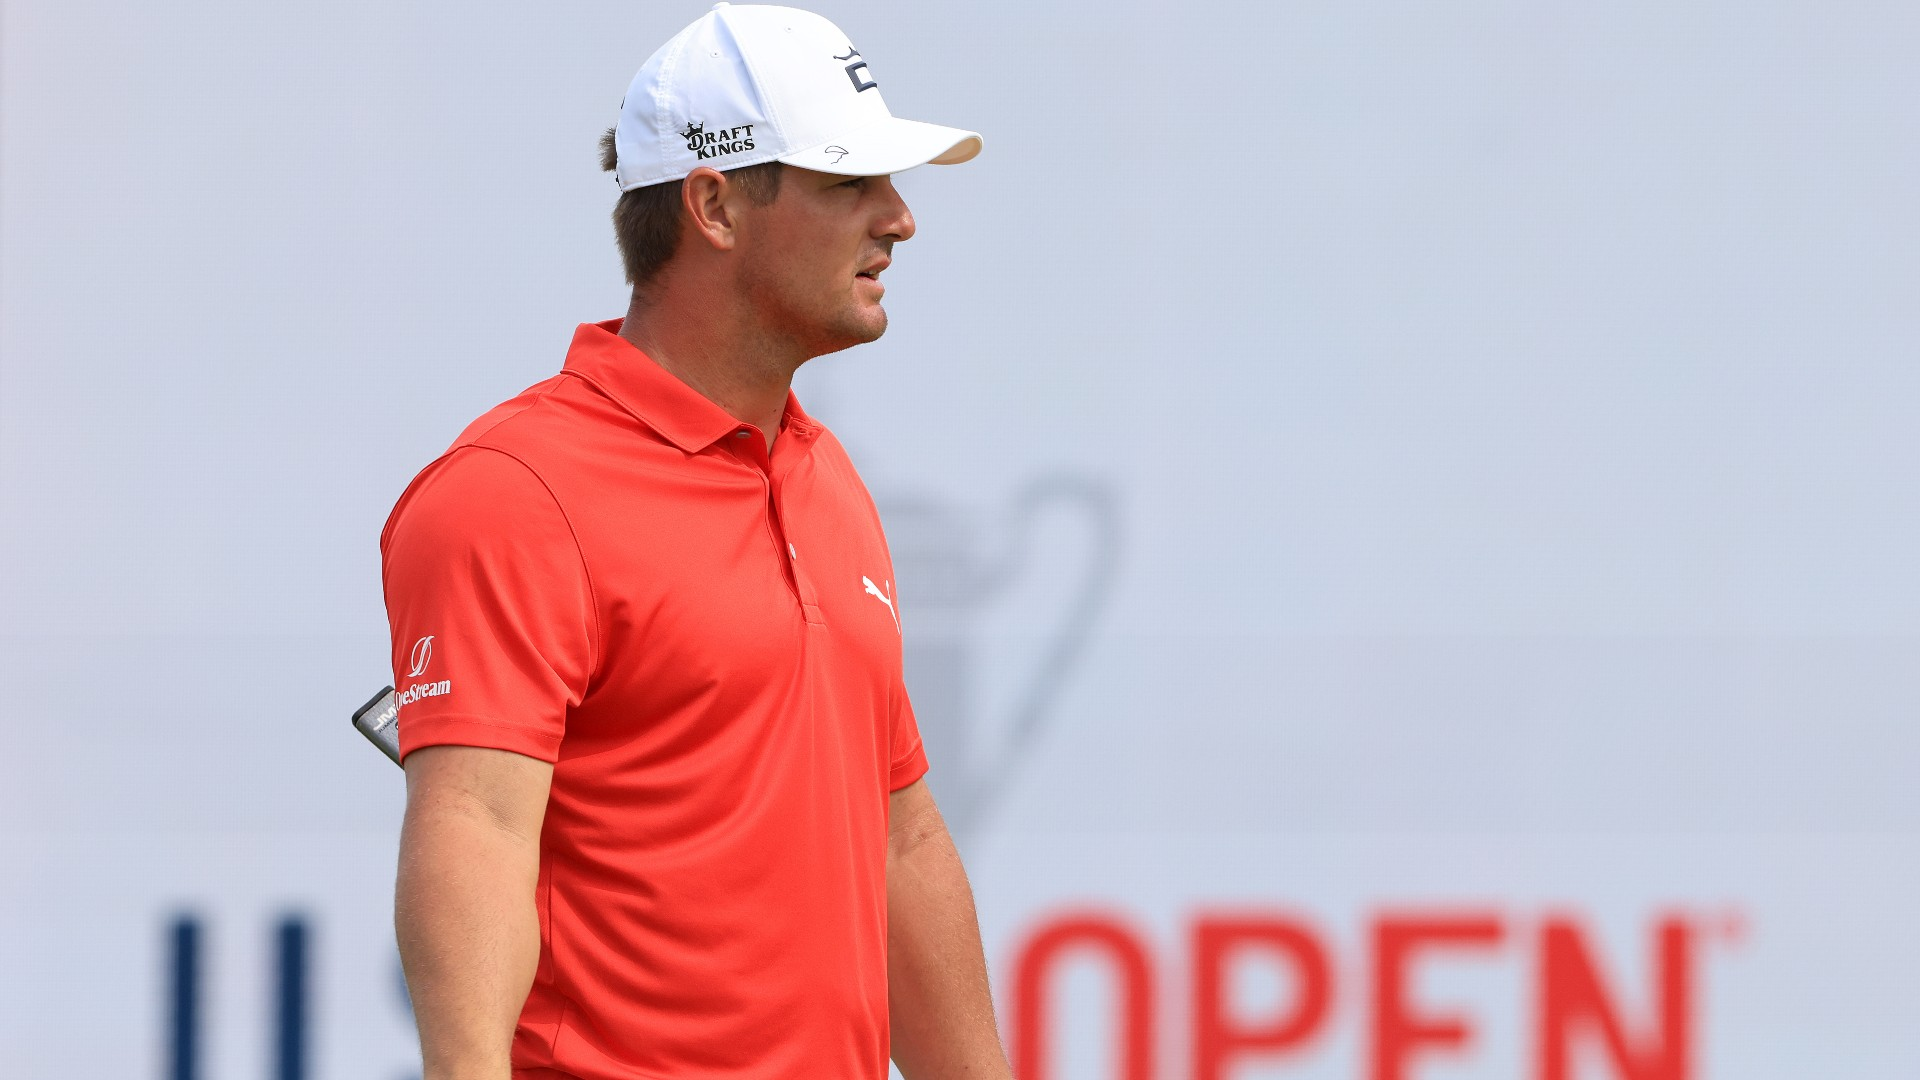 Bryson DeChambeau denies turning down US Open group with Brooks Koepka: 'I would have been fine with that'